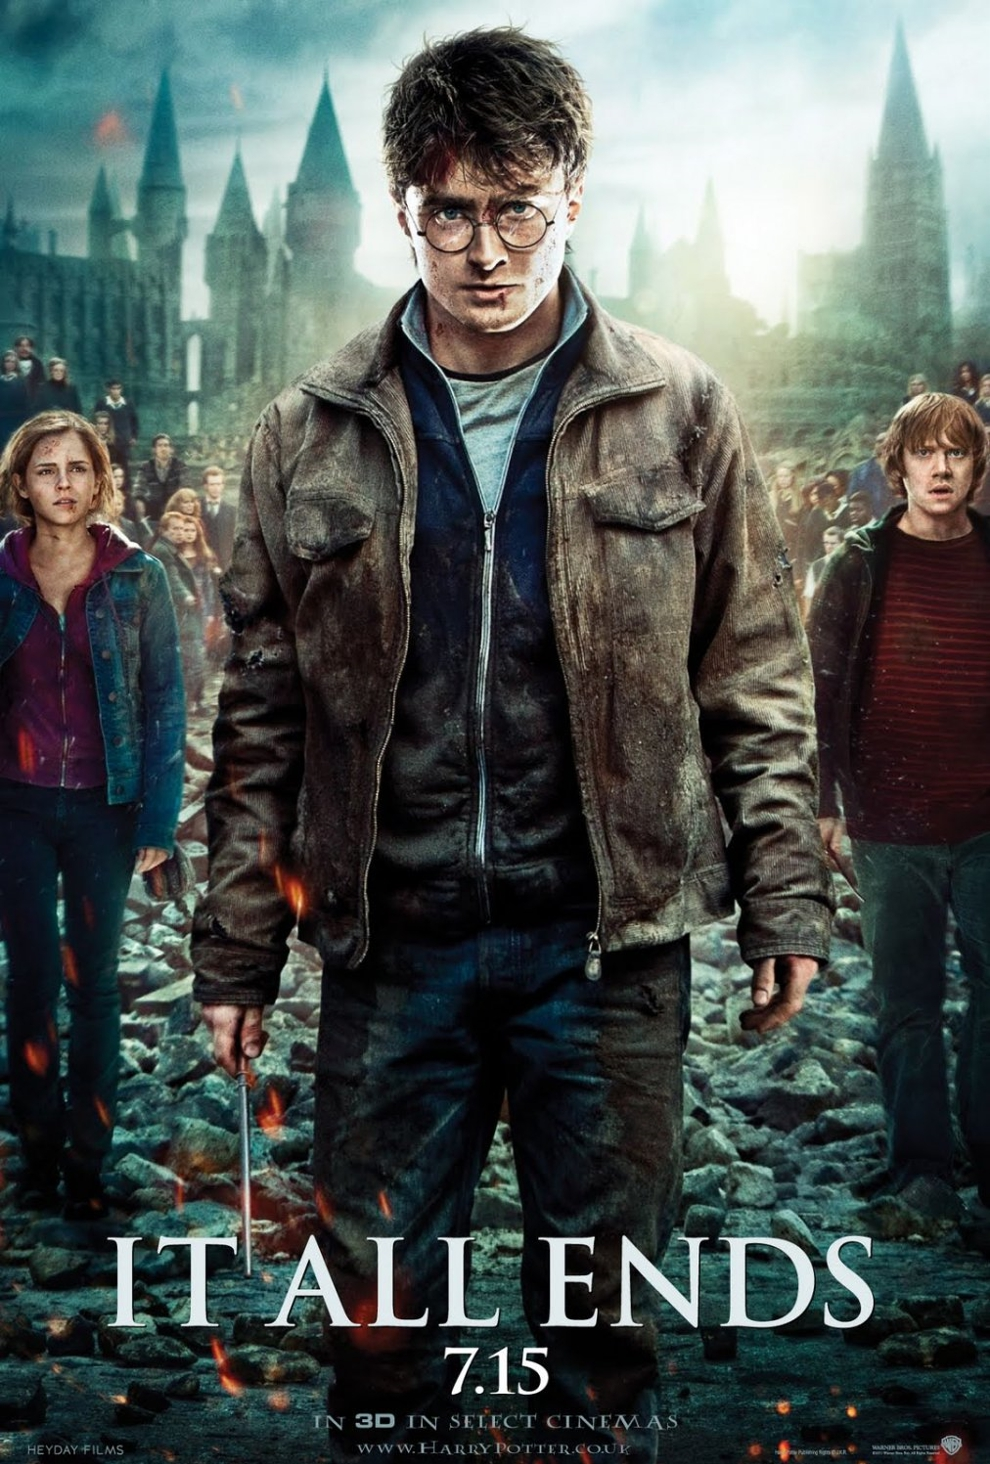 harry potter and the deathly hallows part 2 1429# A A A Post at 2011 8 8 18:29 Show author